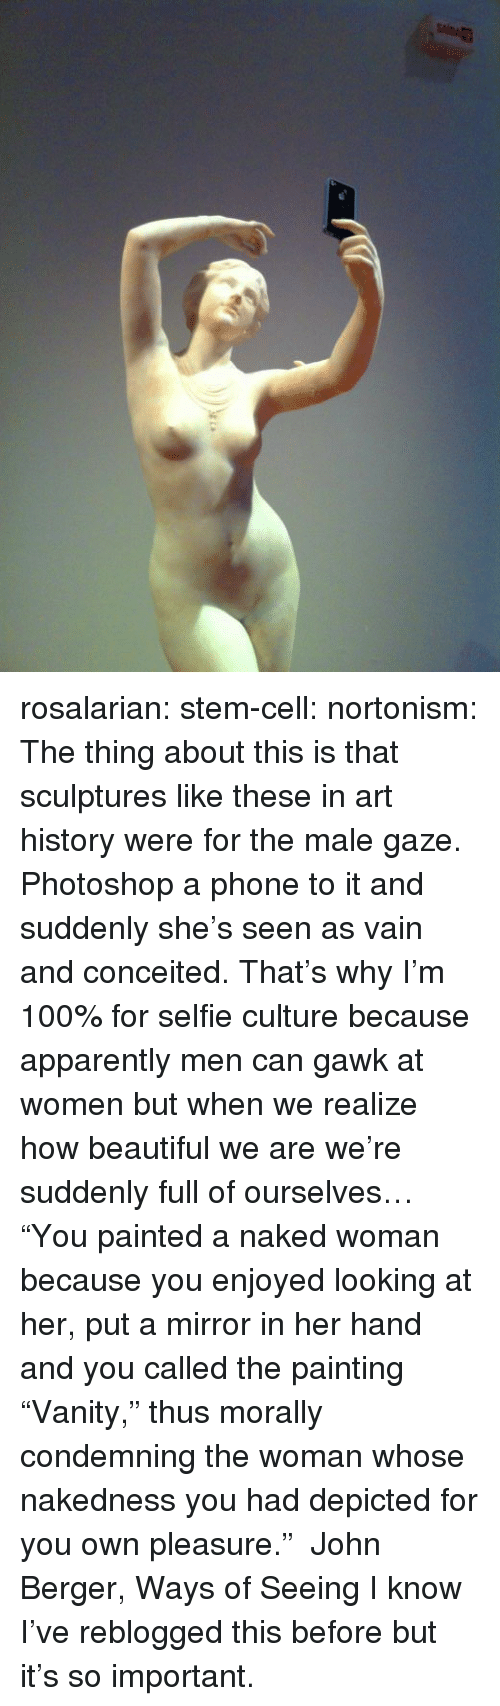 "art history: rosalarian:  stem-cell:  nortonism:  The thing about this is that sculptures like these in art history were for the male gaze. Photoshop a phone to it and suddenly she's seen as vain and conceited. That's why I'm 100% for selfie culture because apparently men can gawk at women but when we realize how beautiful we are we're suddenly full of ourselves…  ""You painted a naked woman because you enjoyed looking at her, put a mirror in her hand and you called the painting ""Vanity,"" thus morally condemning the woman whose nakedness you had depicted for you own pleasure."" ― John Berger, Ways of Seeing  I know I've reblogged this before but it's so important."